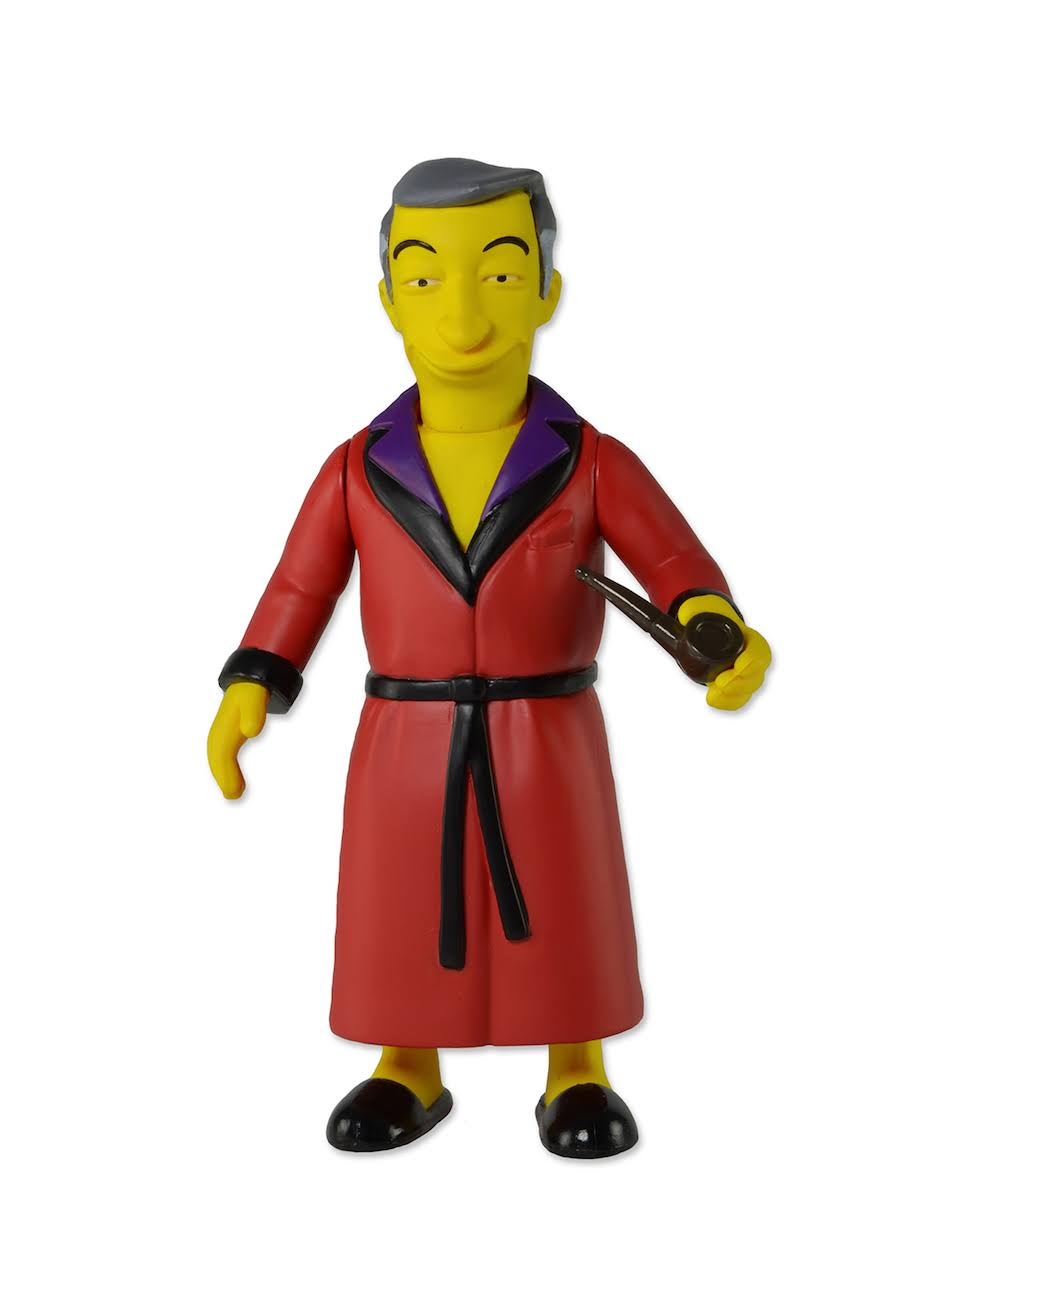 The Simpsons 25TH Anniversary Figure - Series 1, Hugh Hefner, 5""